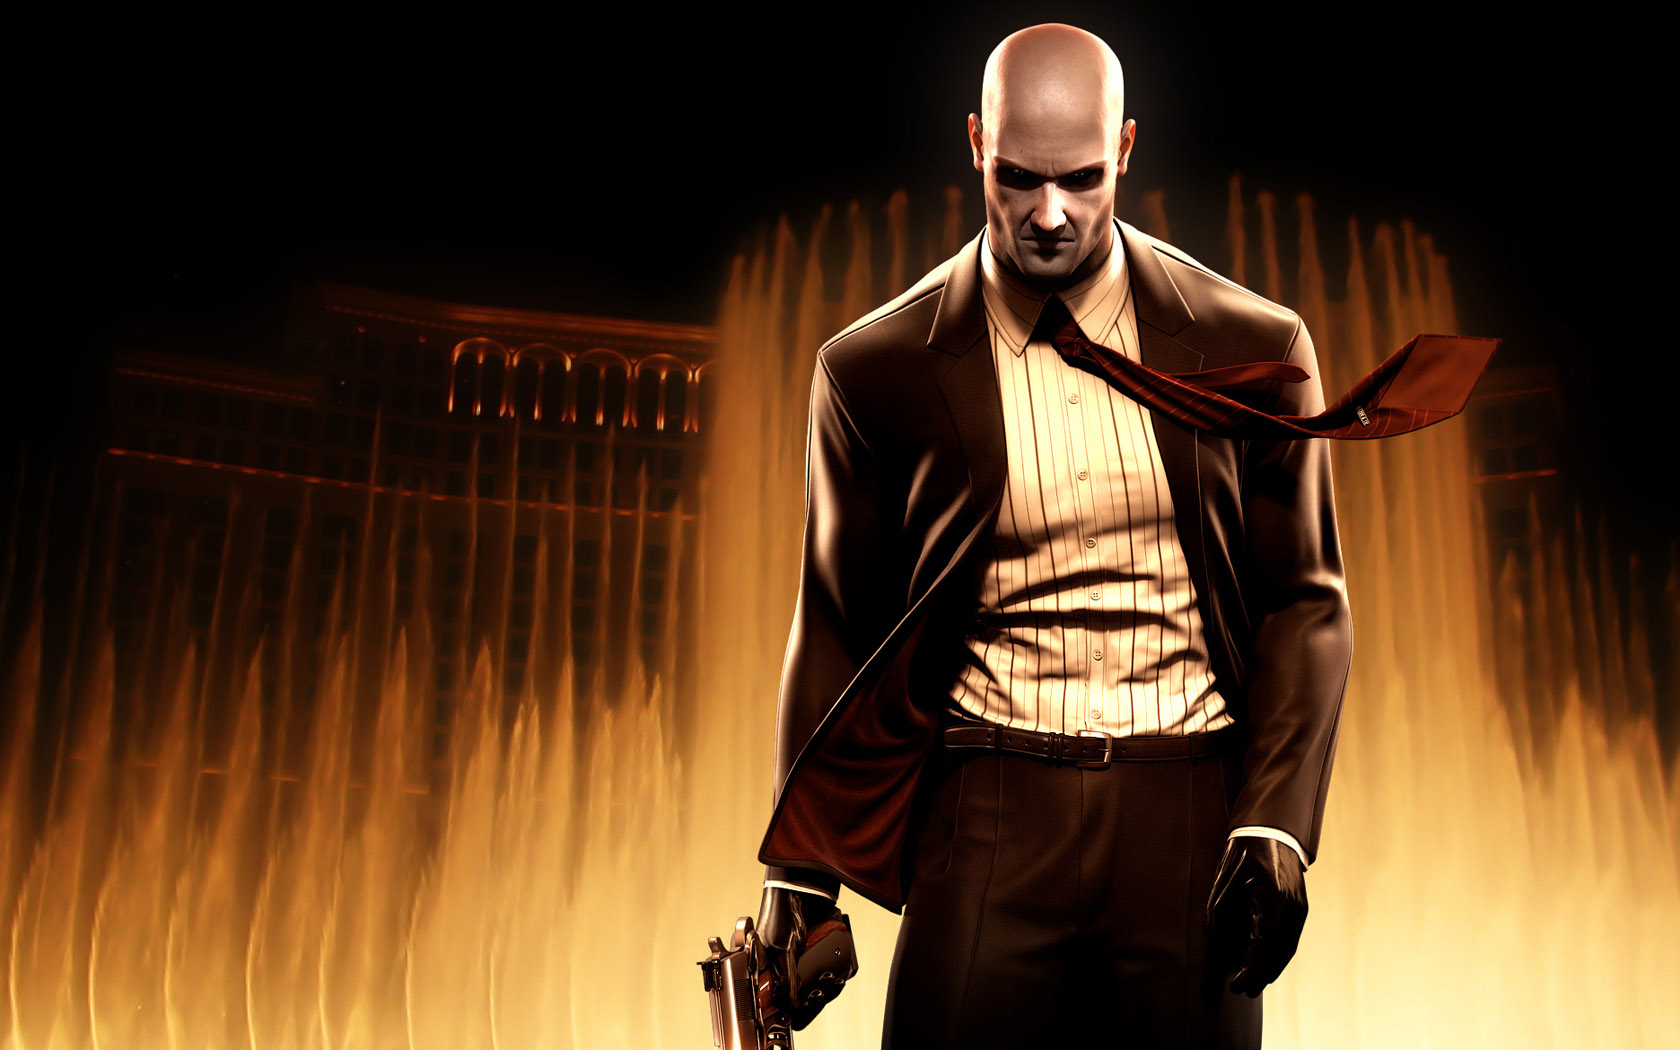 wallpaperswallpapersdeponetfree wallpapers1569Video Game Hitman 1680x1050